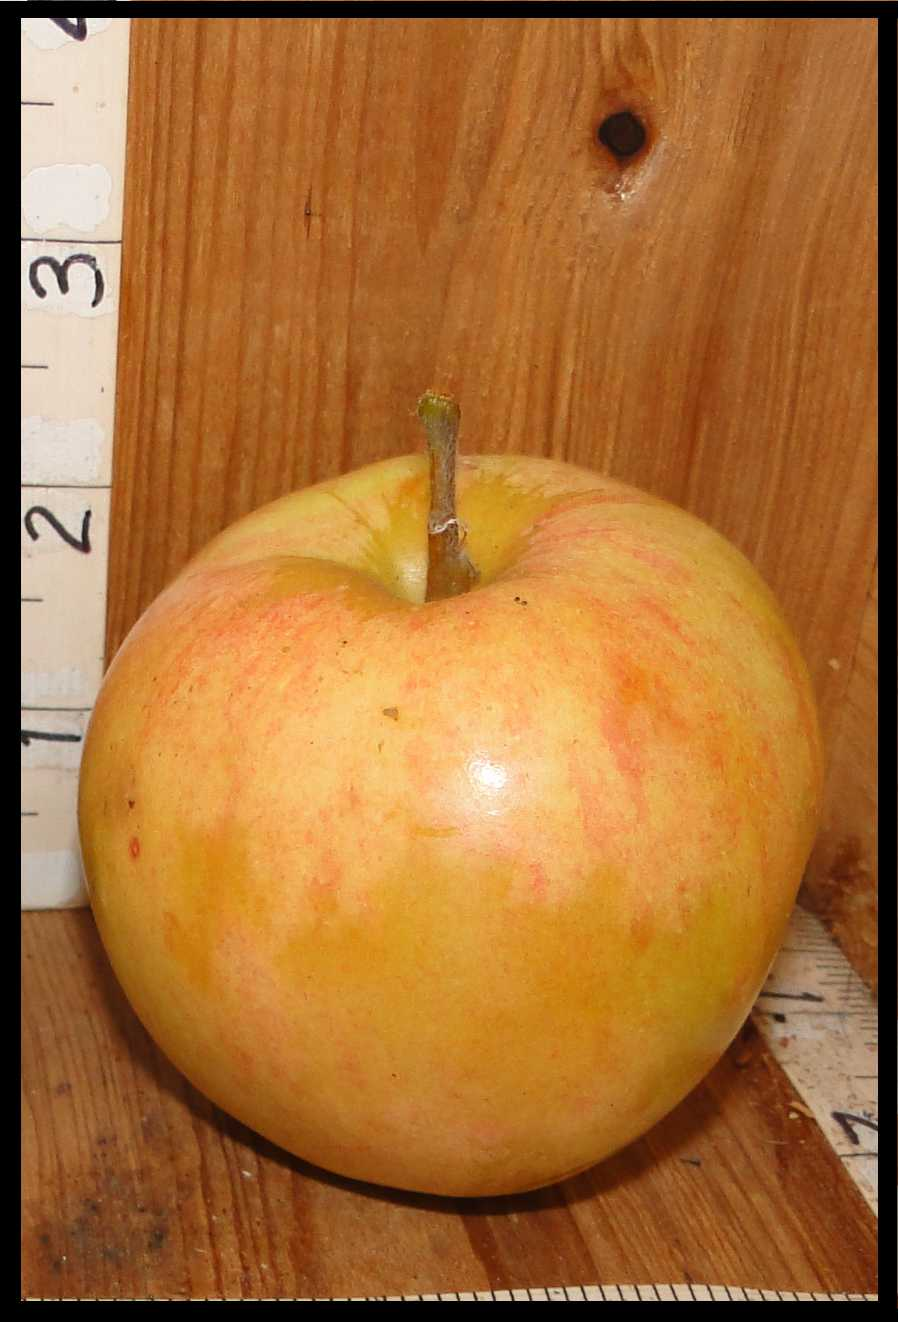 yellow apple almost white with faint streaks of pink